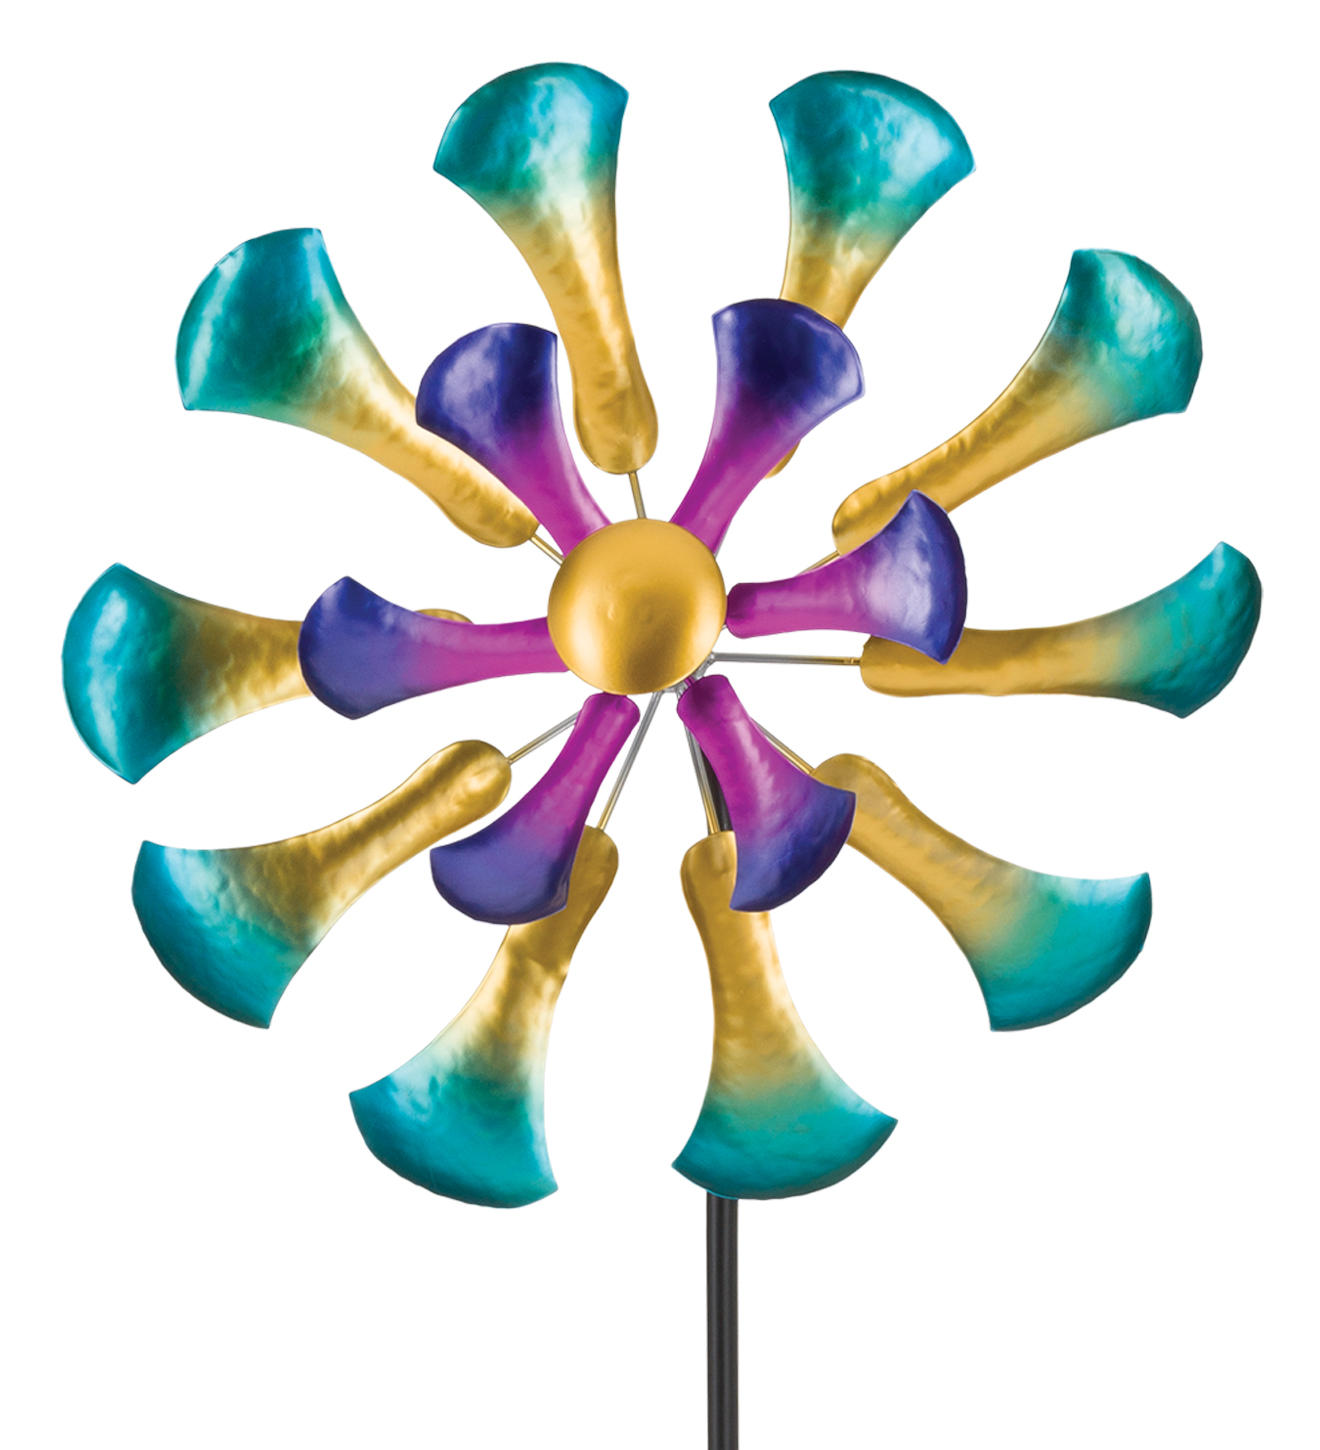 19″ Wind Spinner – Flower